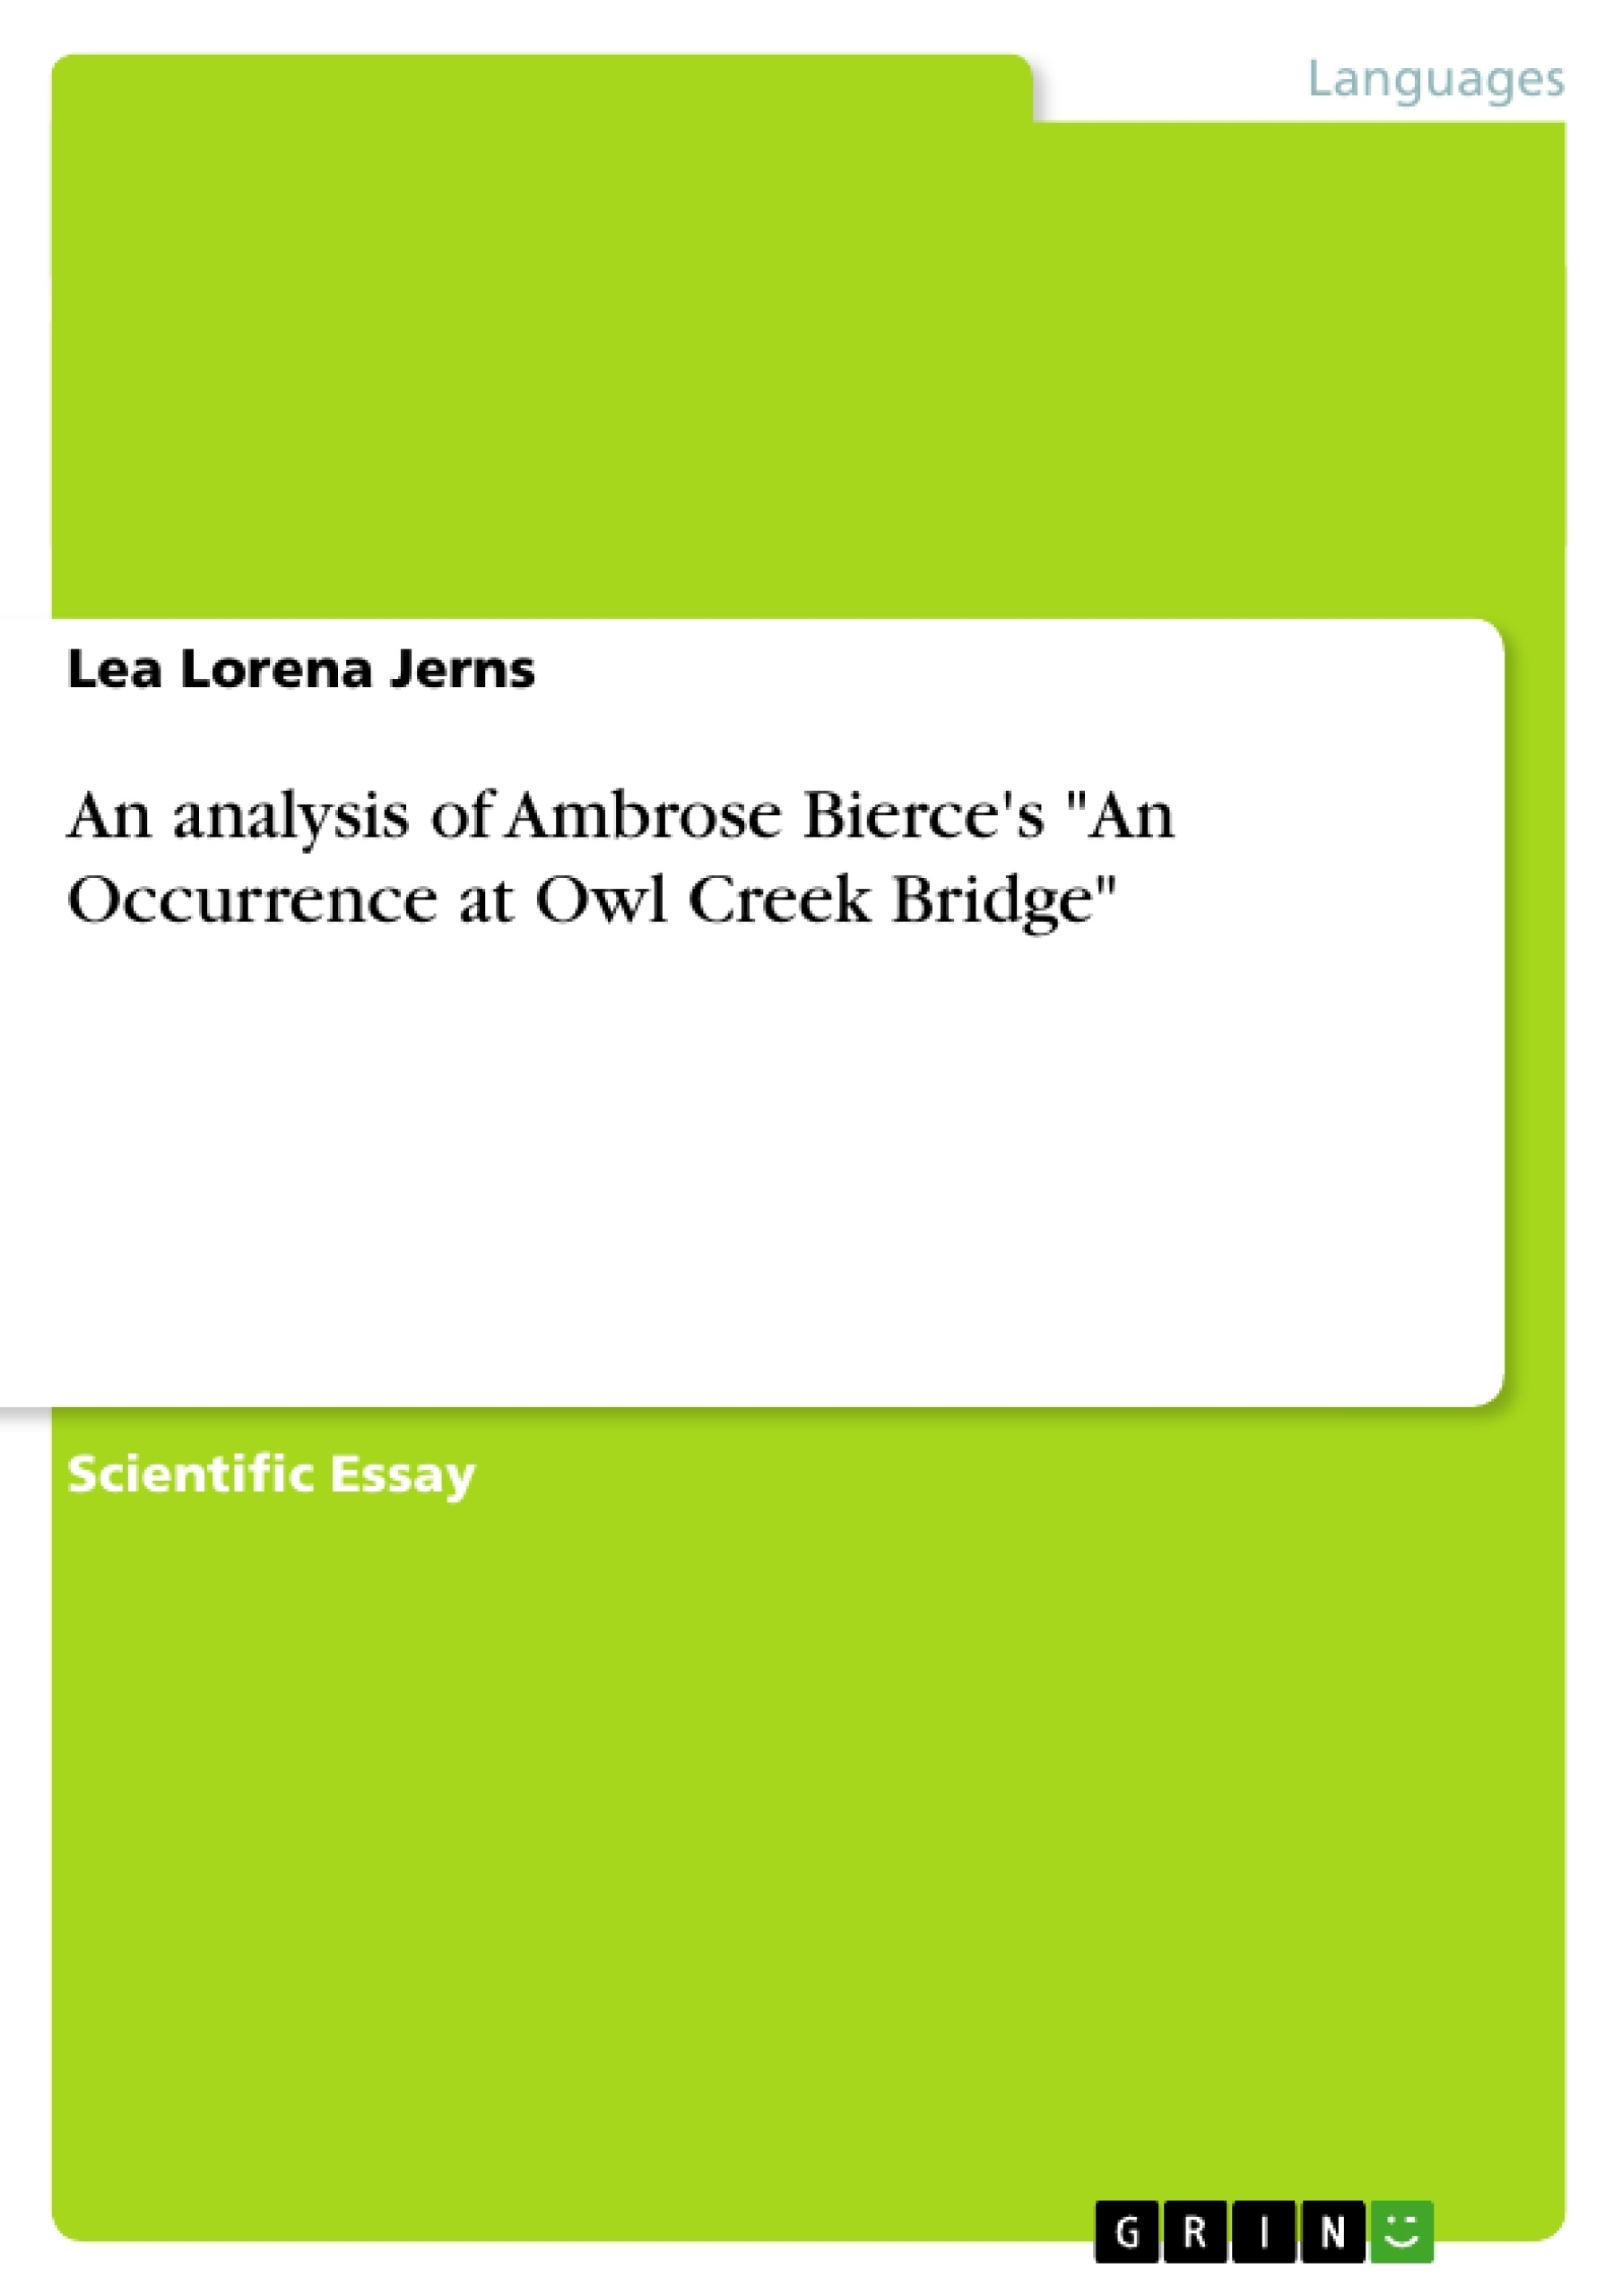 an analysis of ambrose bierce s an occurrence at owl creek bridge  earn money and win an iphone x